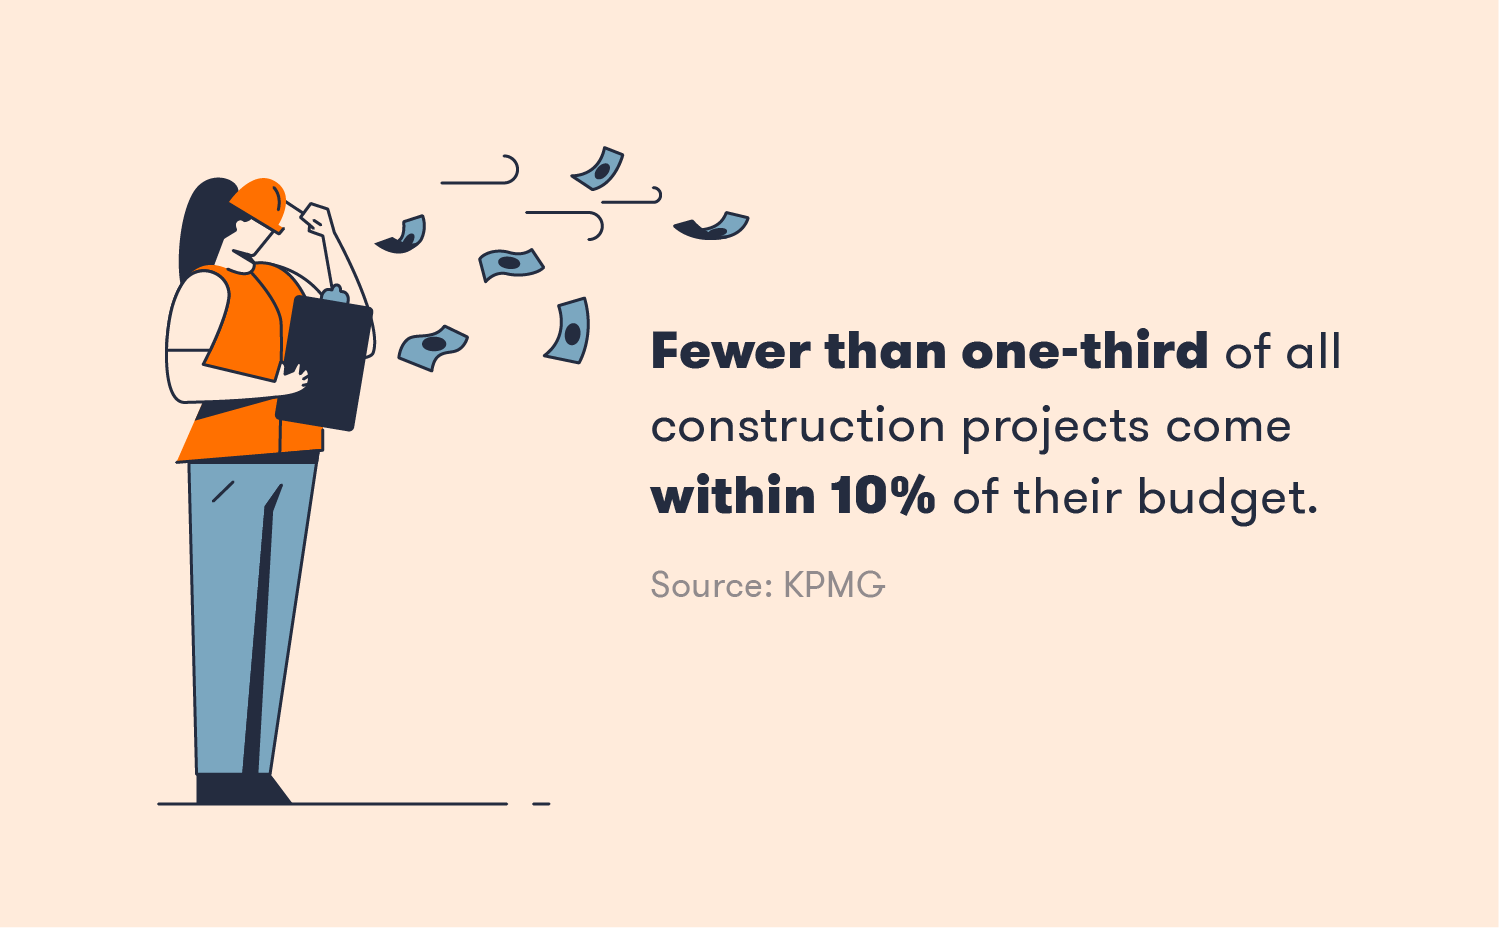 Fewer than one-third of construction projects come within 10% of their budget.